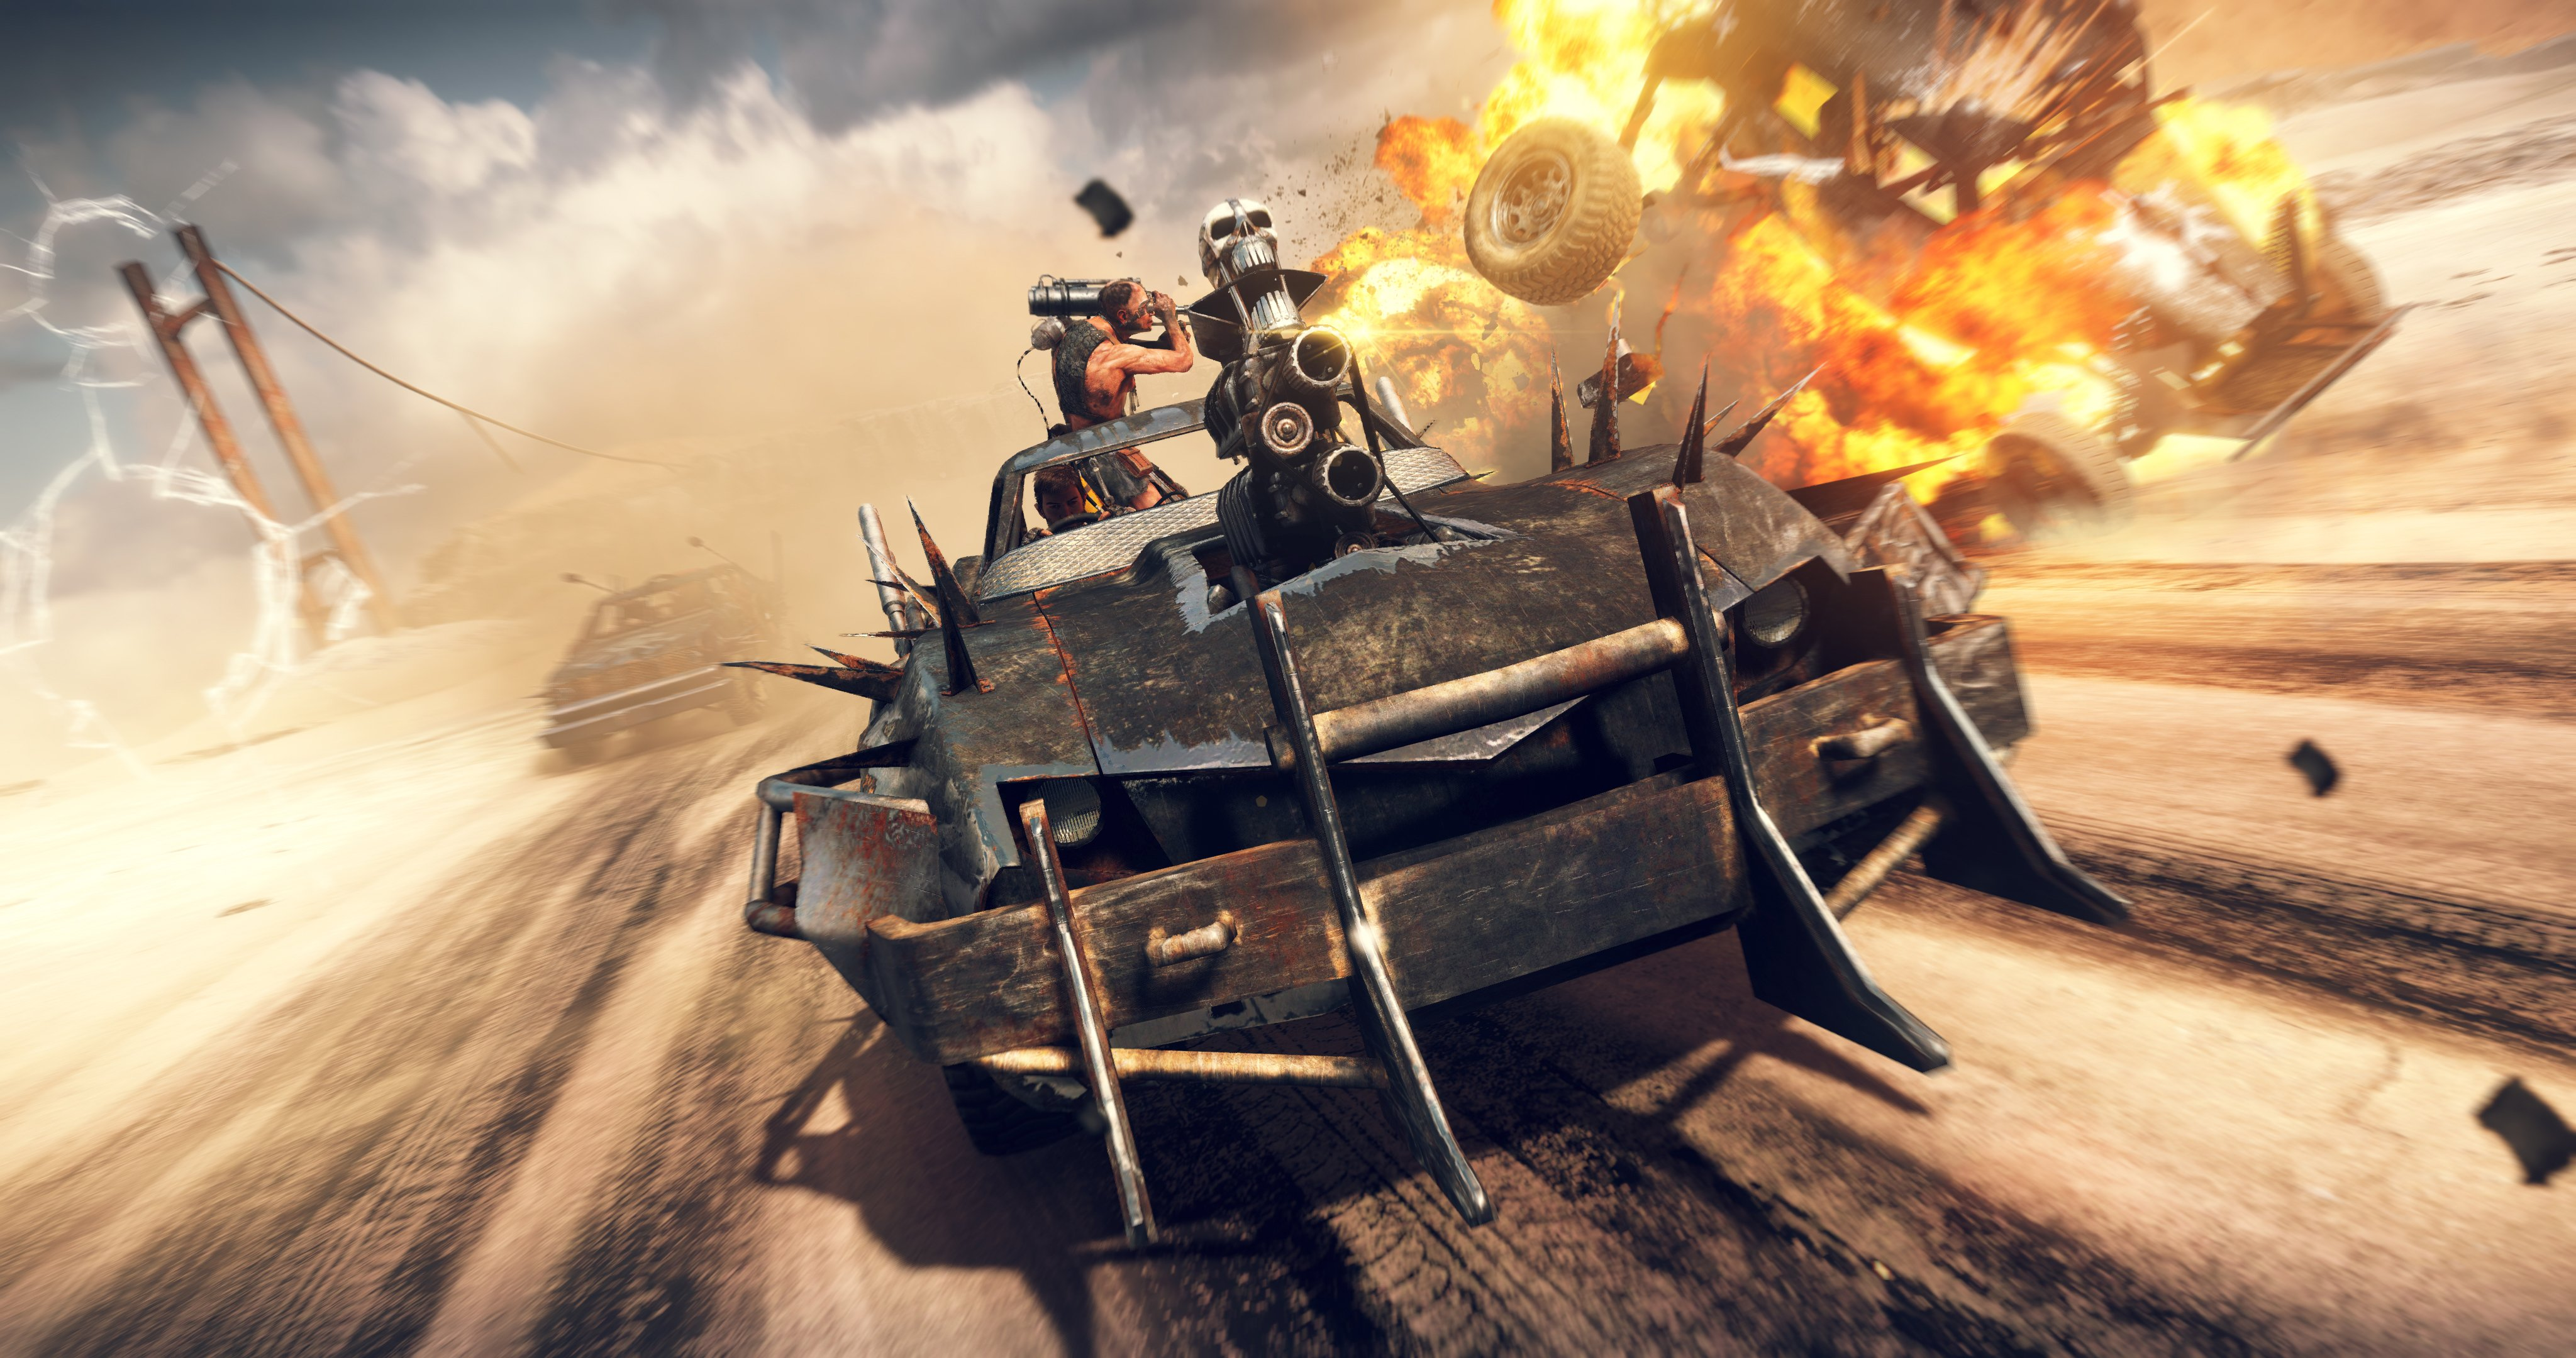 Mad Max game image